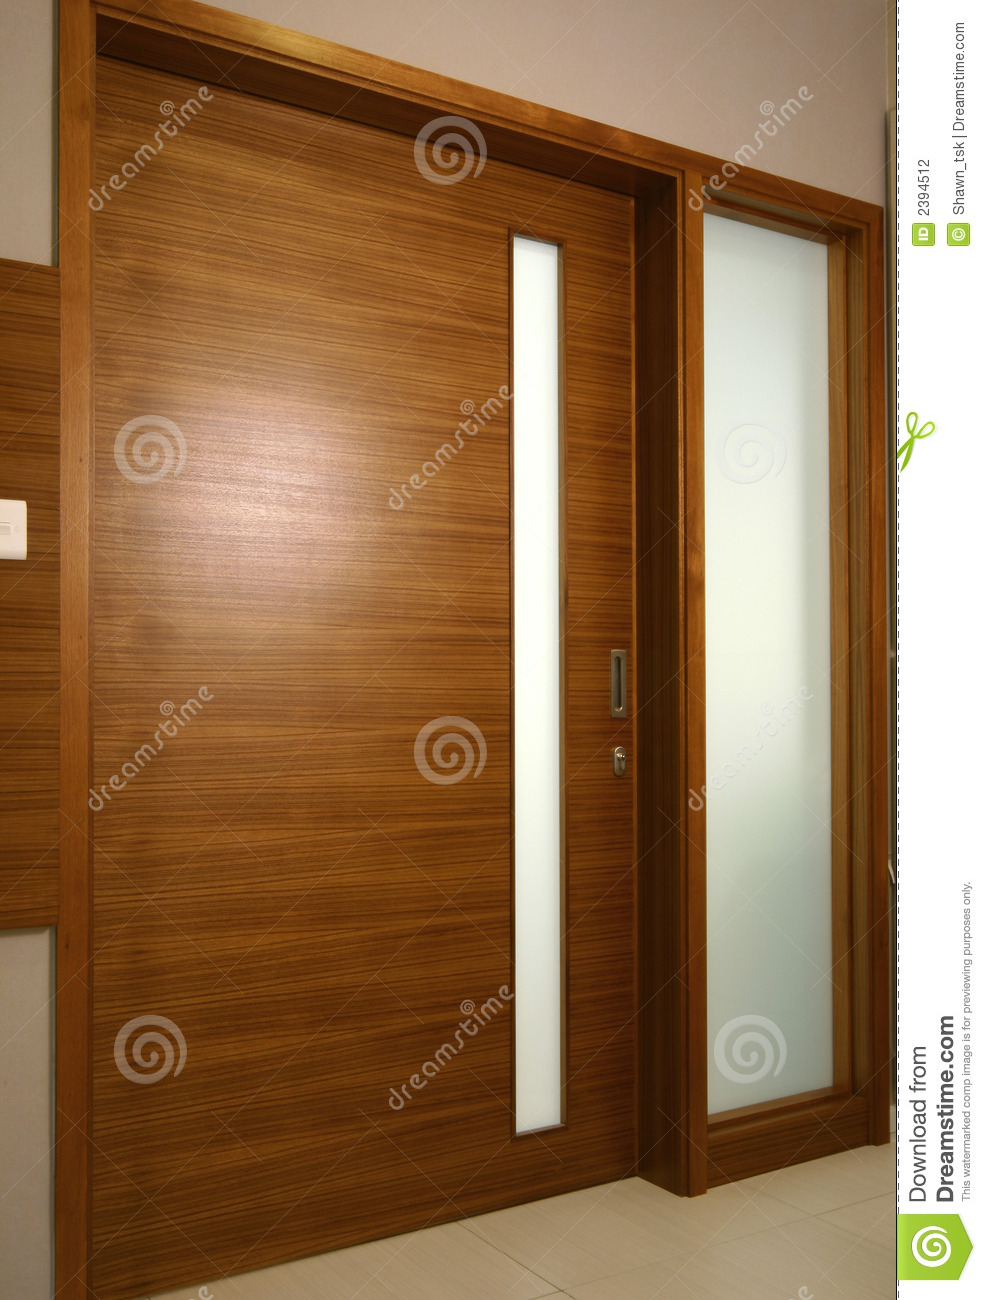 Interior design sliding door stock photo image of for Sliding indoor doors design